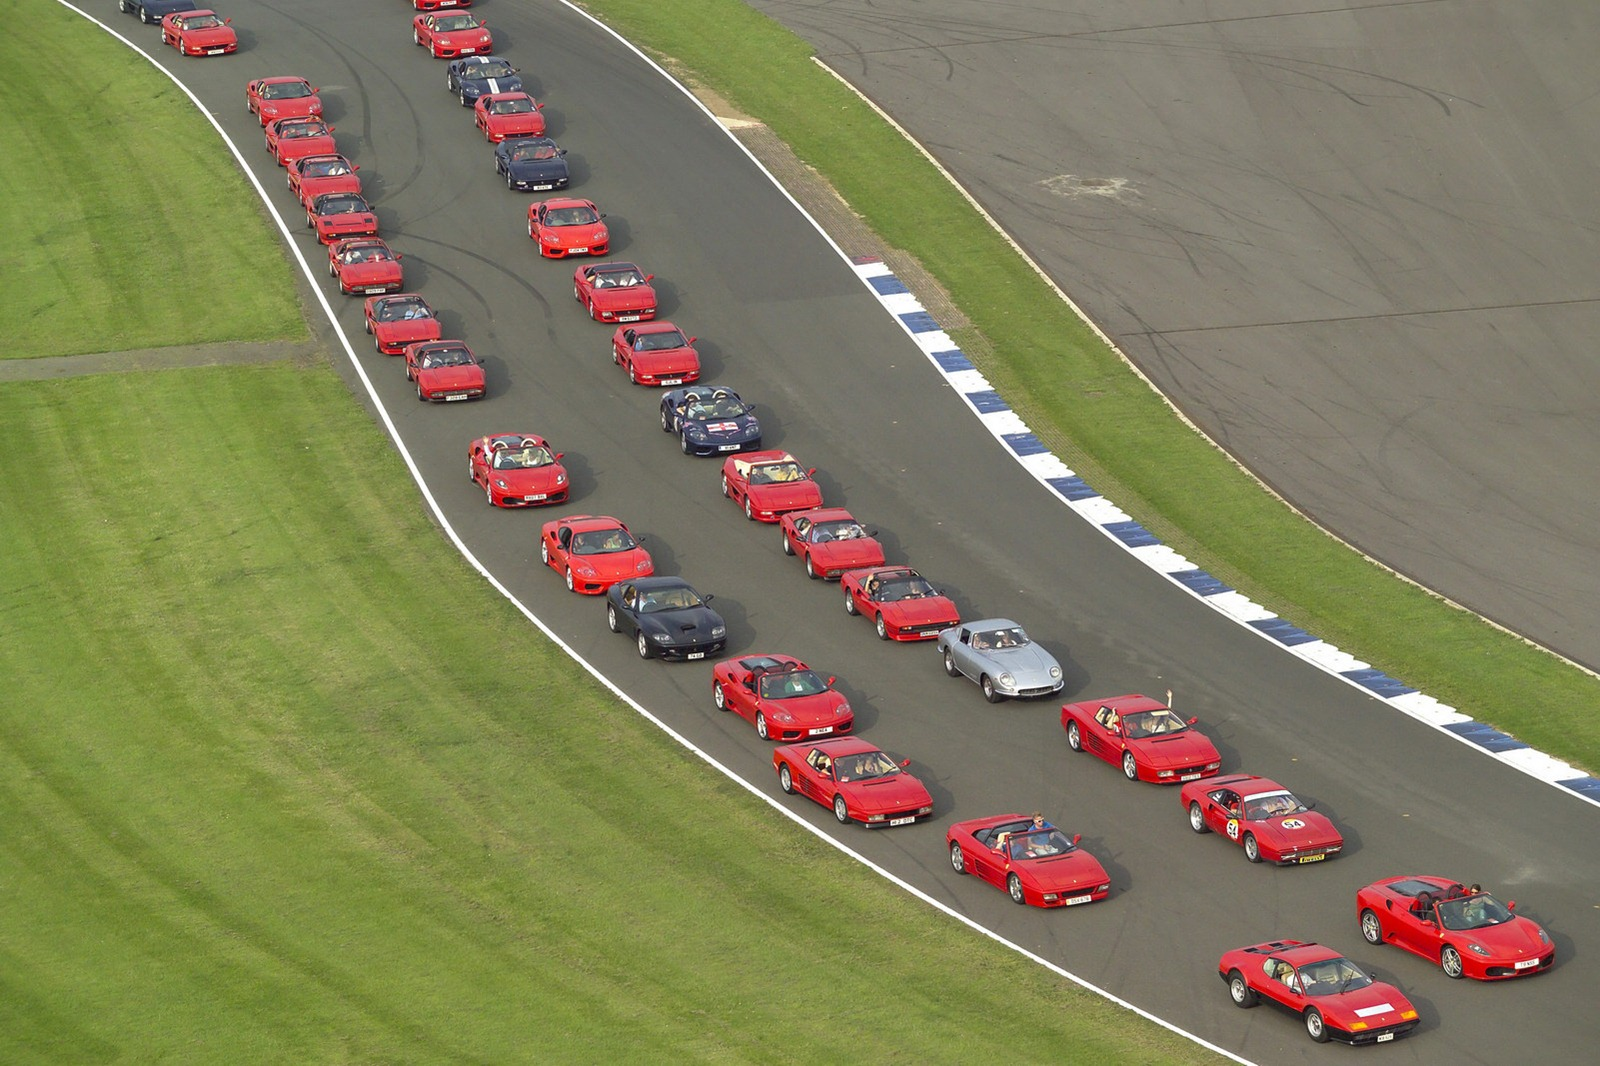 Ferrari to set world Record at Silverstone